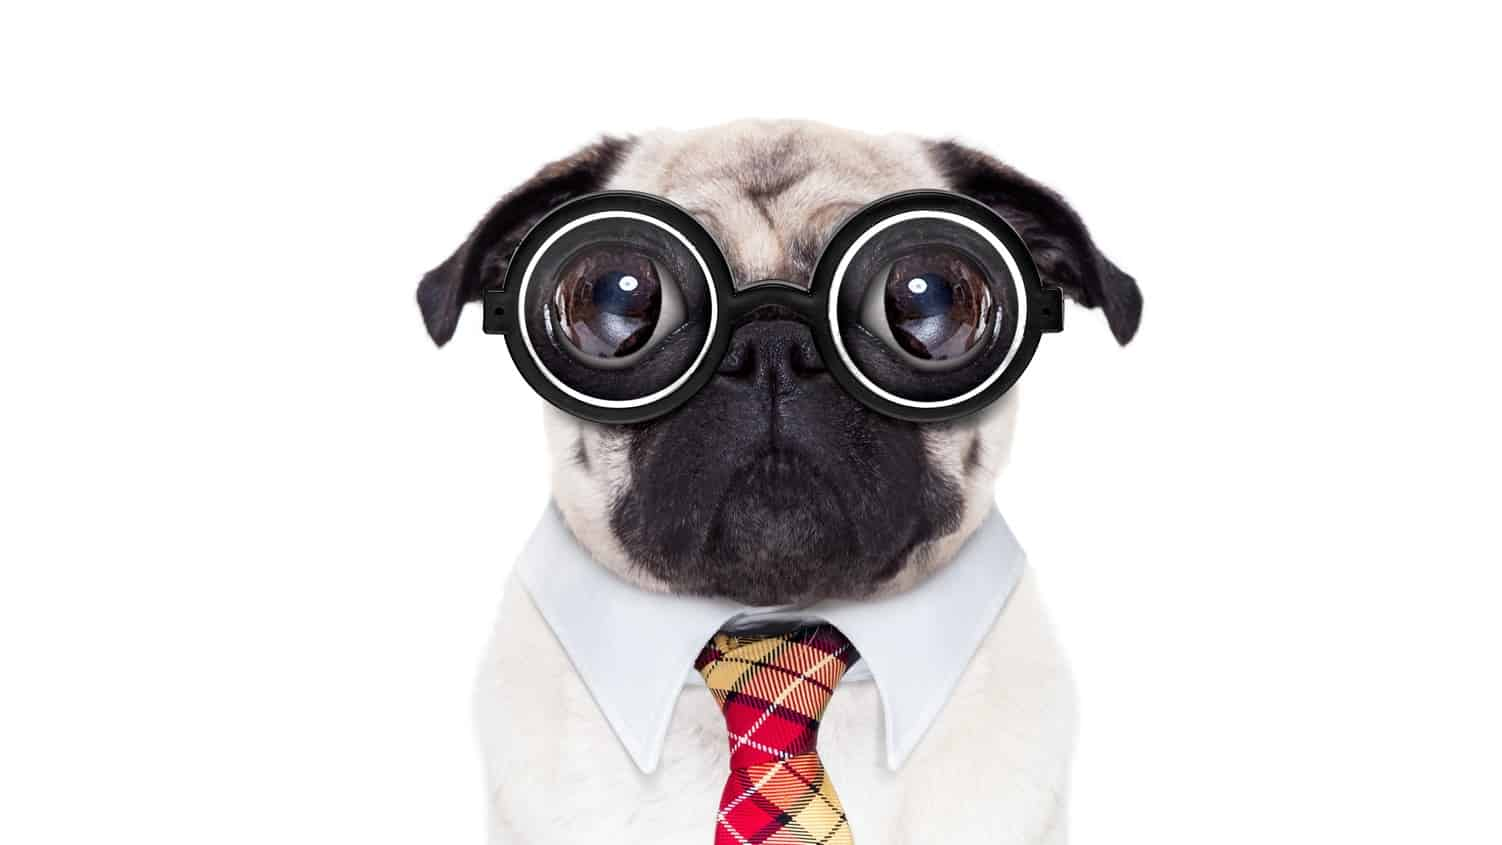 pug dog going to work with nerd glasses and big ugly eyes, isolated on white background